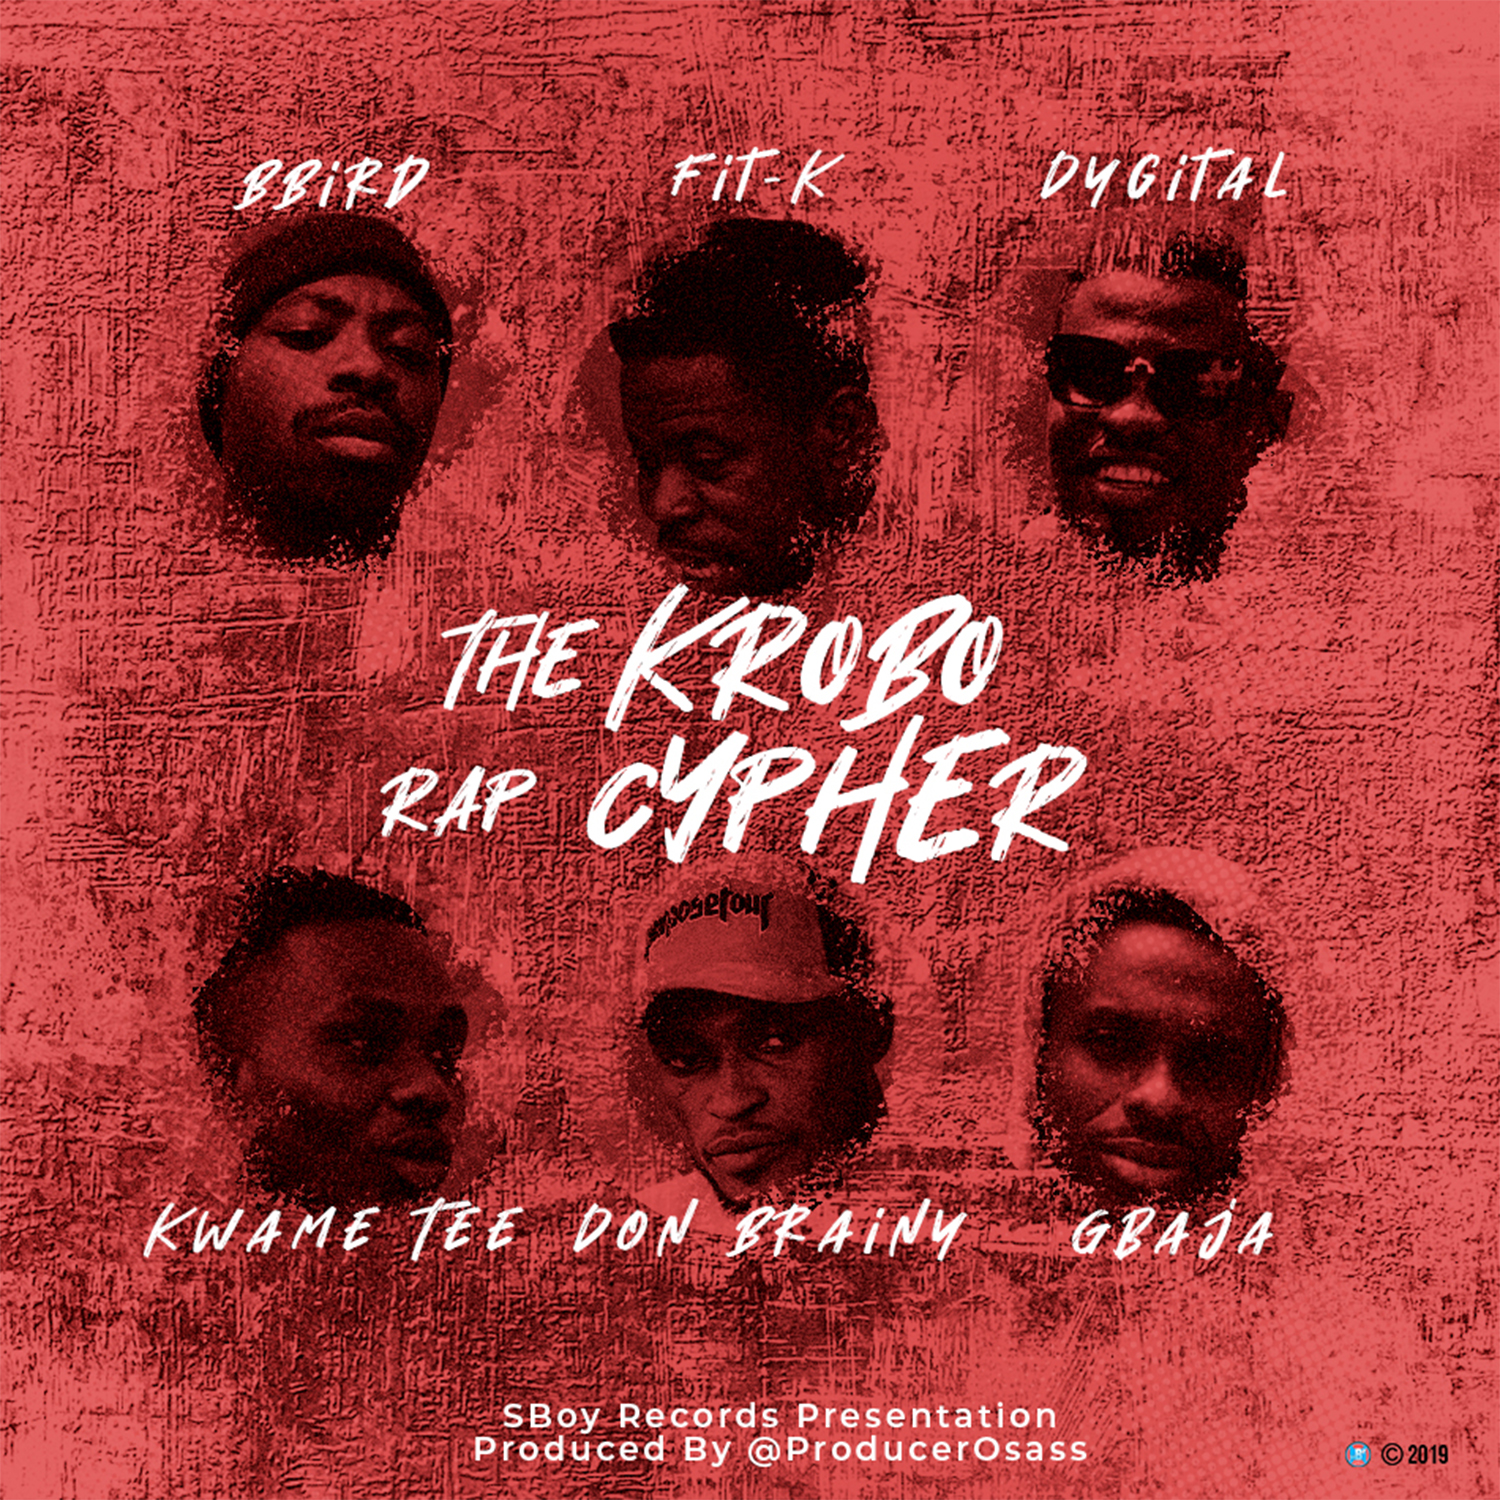 SB Records presents this all stars Krobo Rap Cypher which features BBird ,Fit-K ,Dygital ,Kwame Tee ,Don Brainy and Gbaja. check it out below  BBird – Krobo Rap Cypher […]